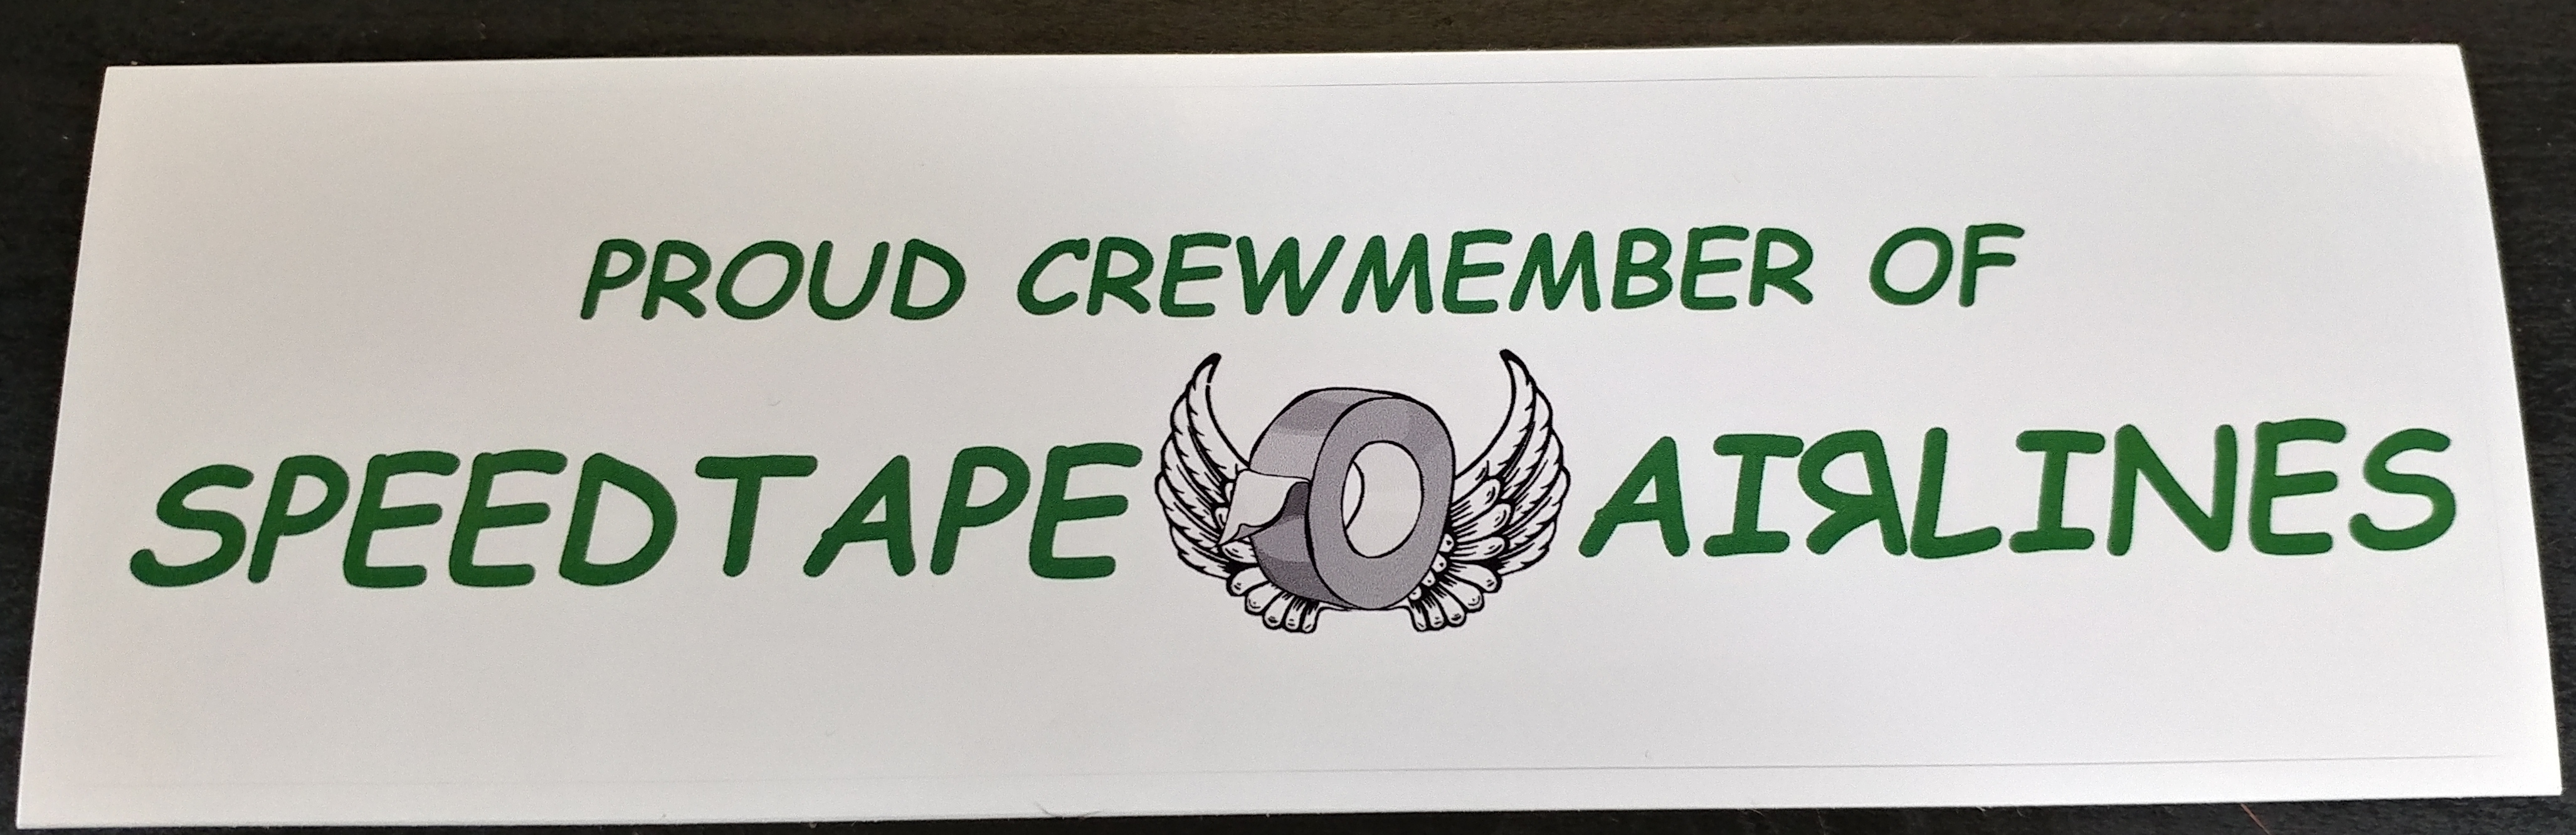 Crew Bag Sticker $5.99